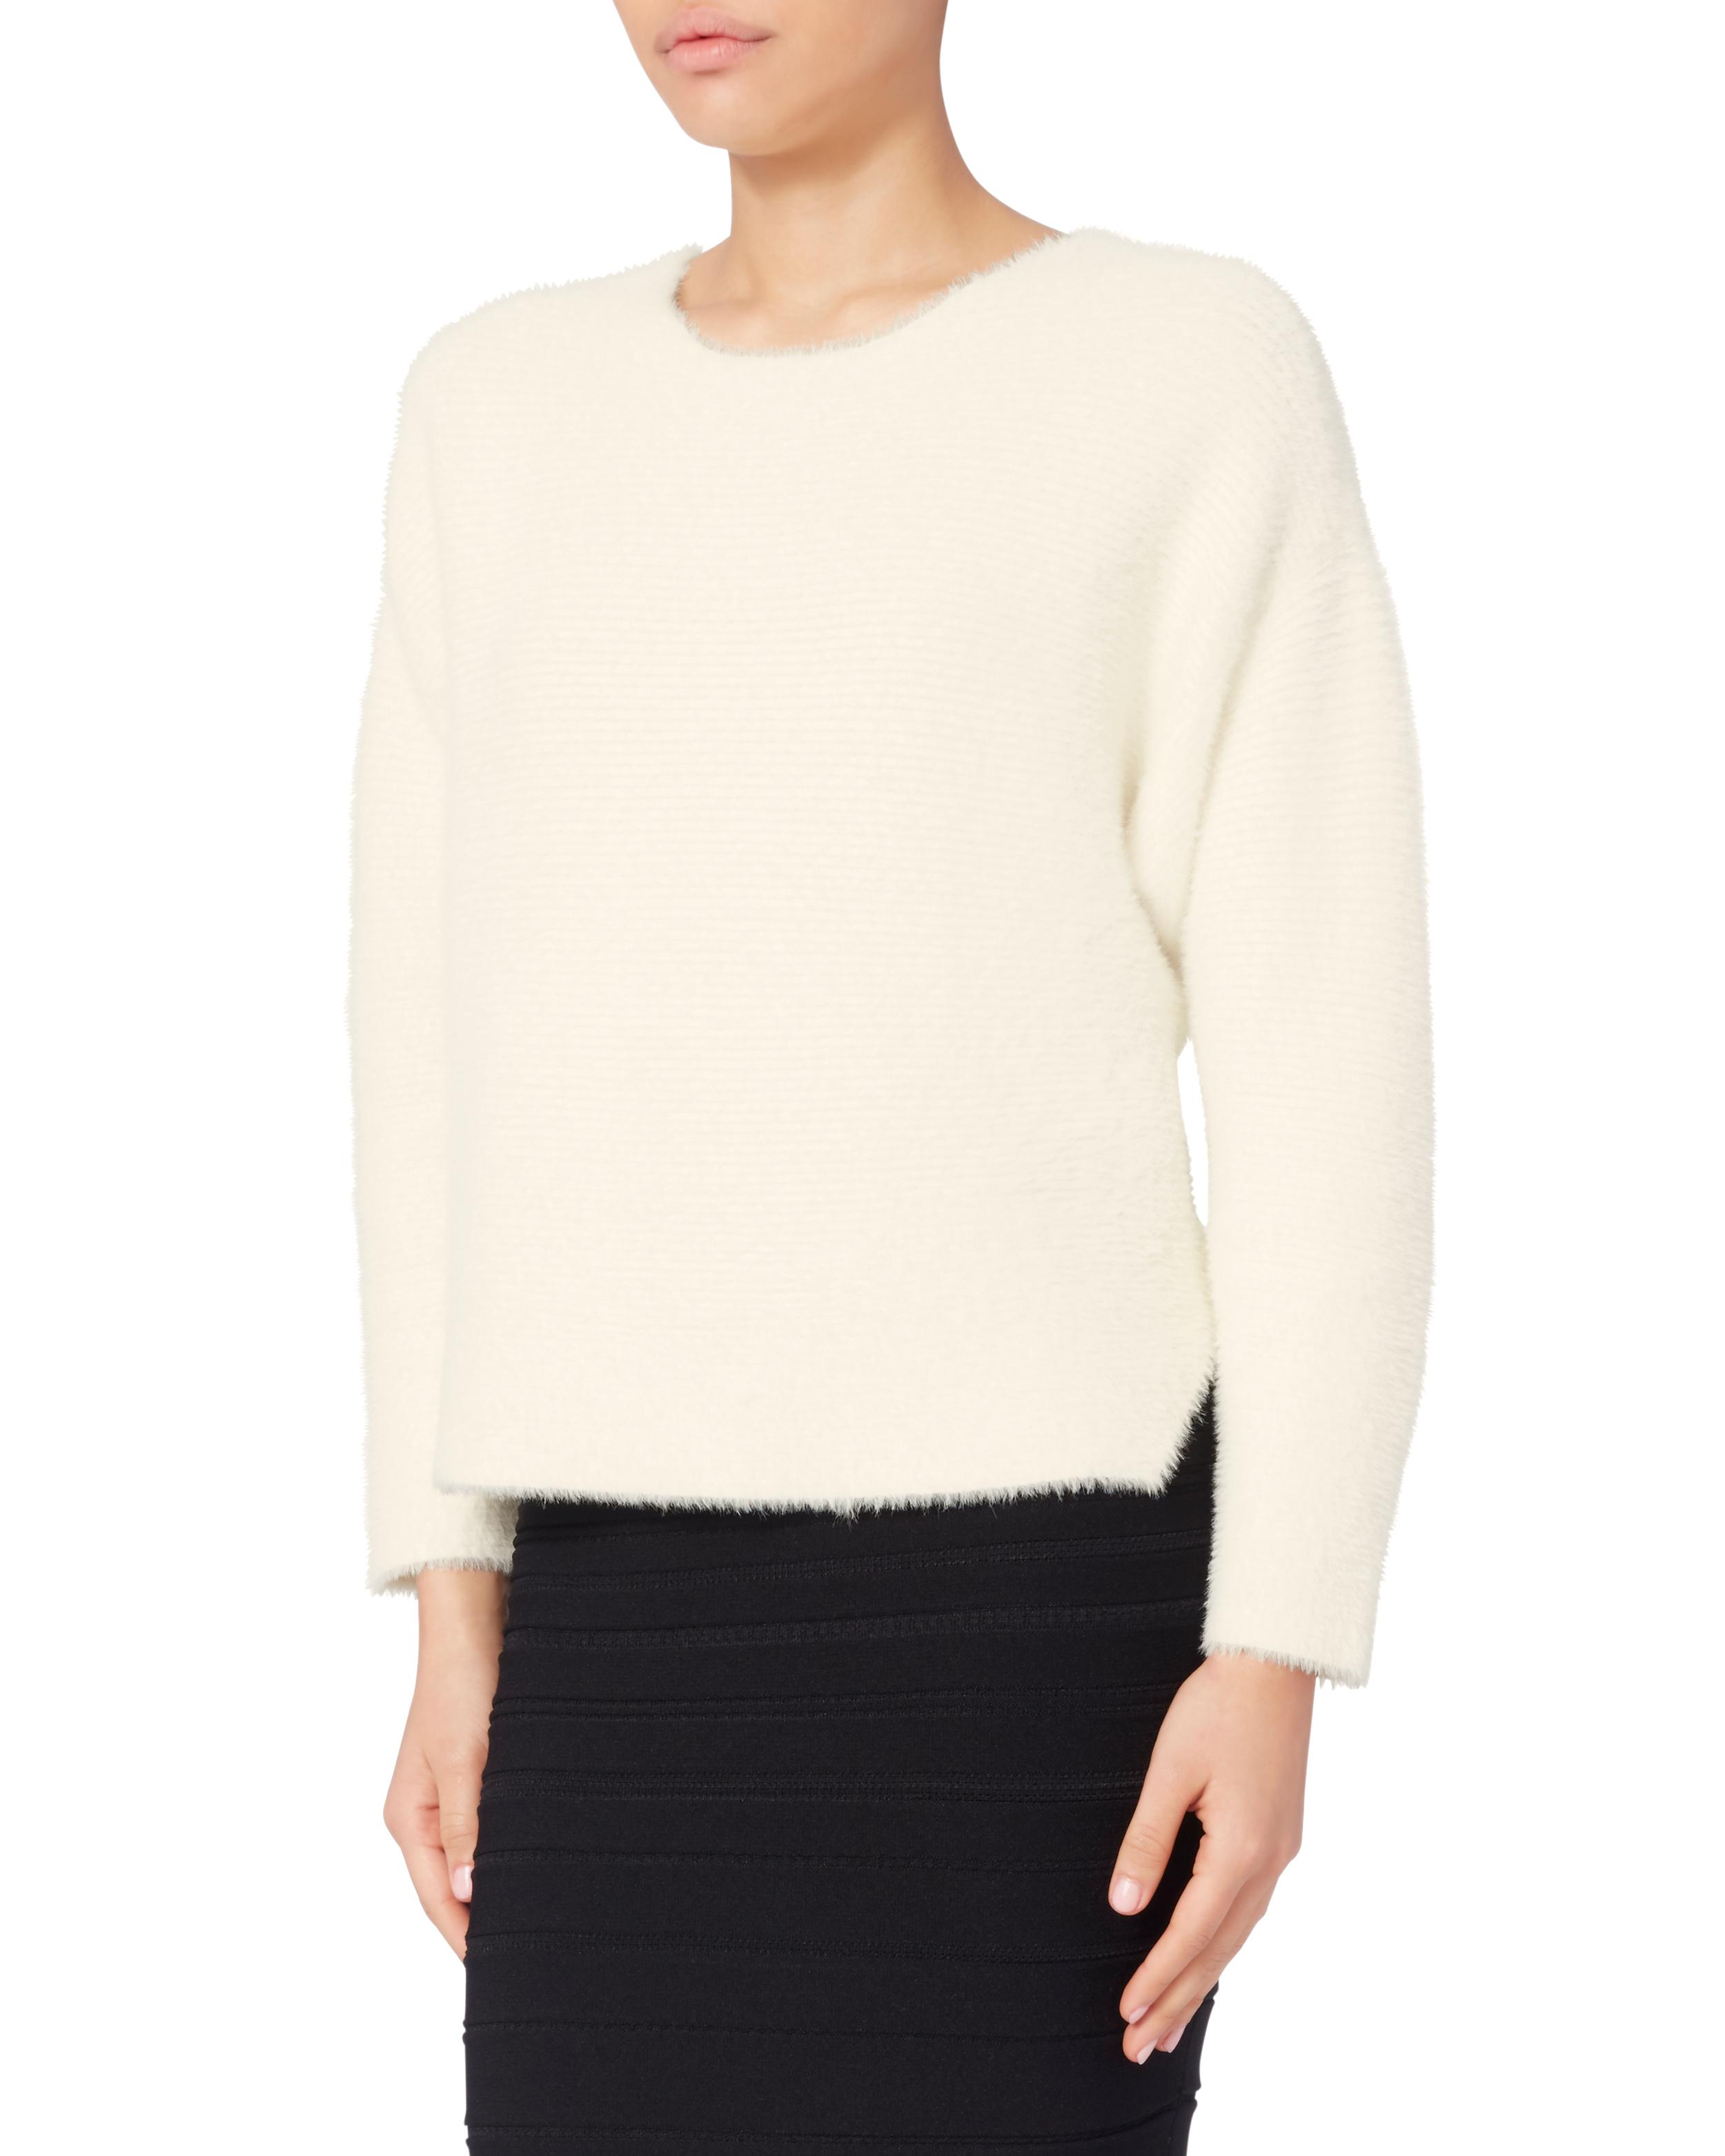 Michelle mason Oversized Cropped Sweater in White | Lyst